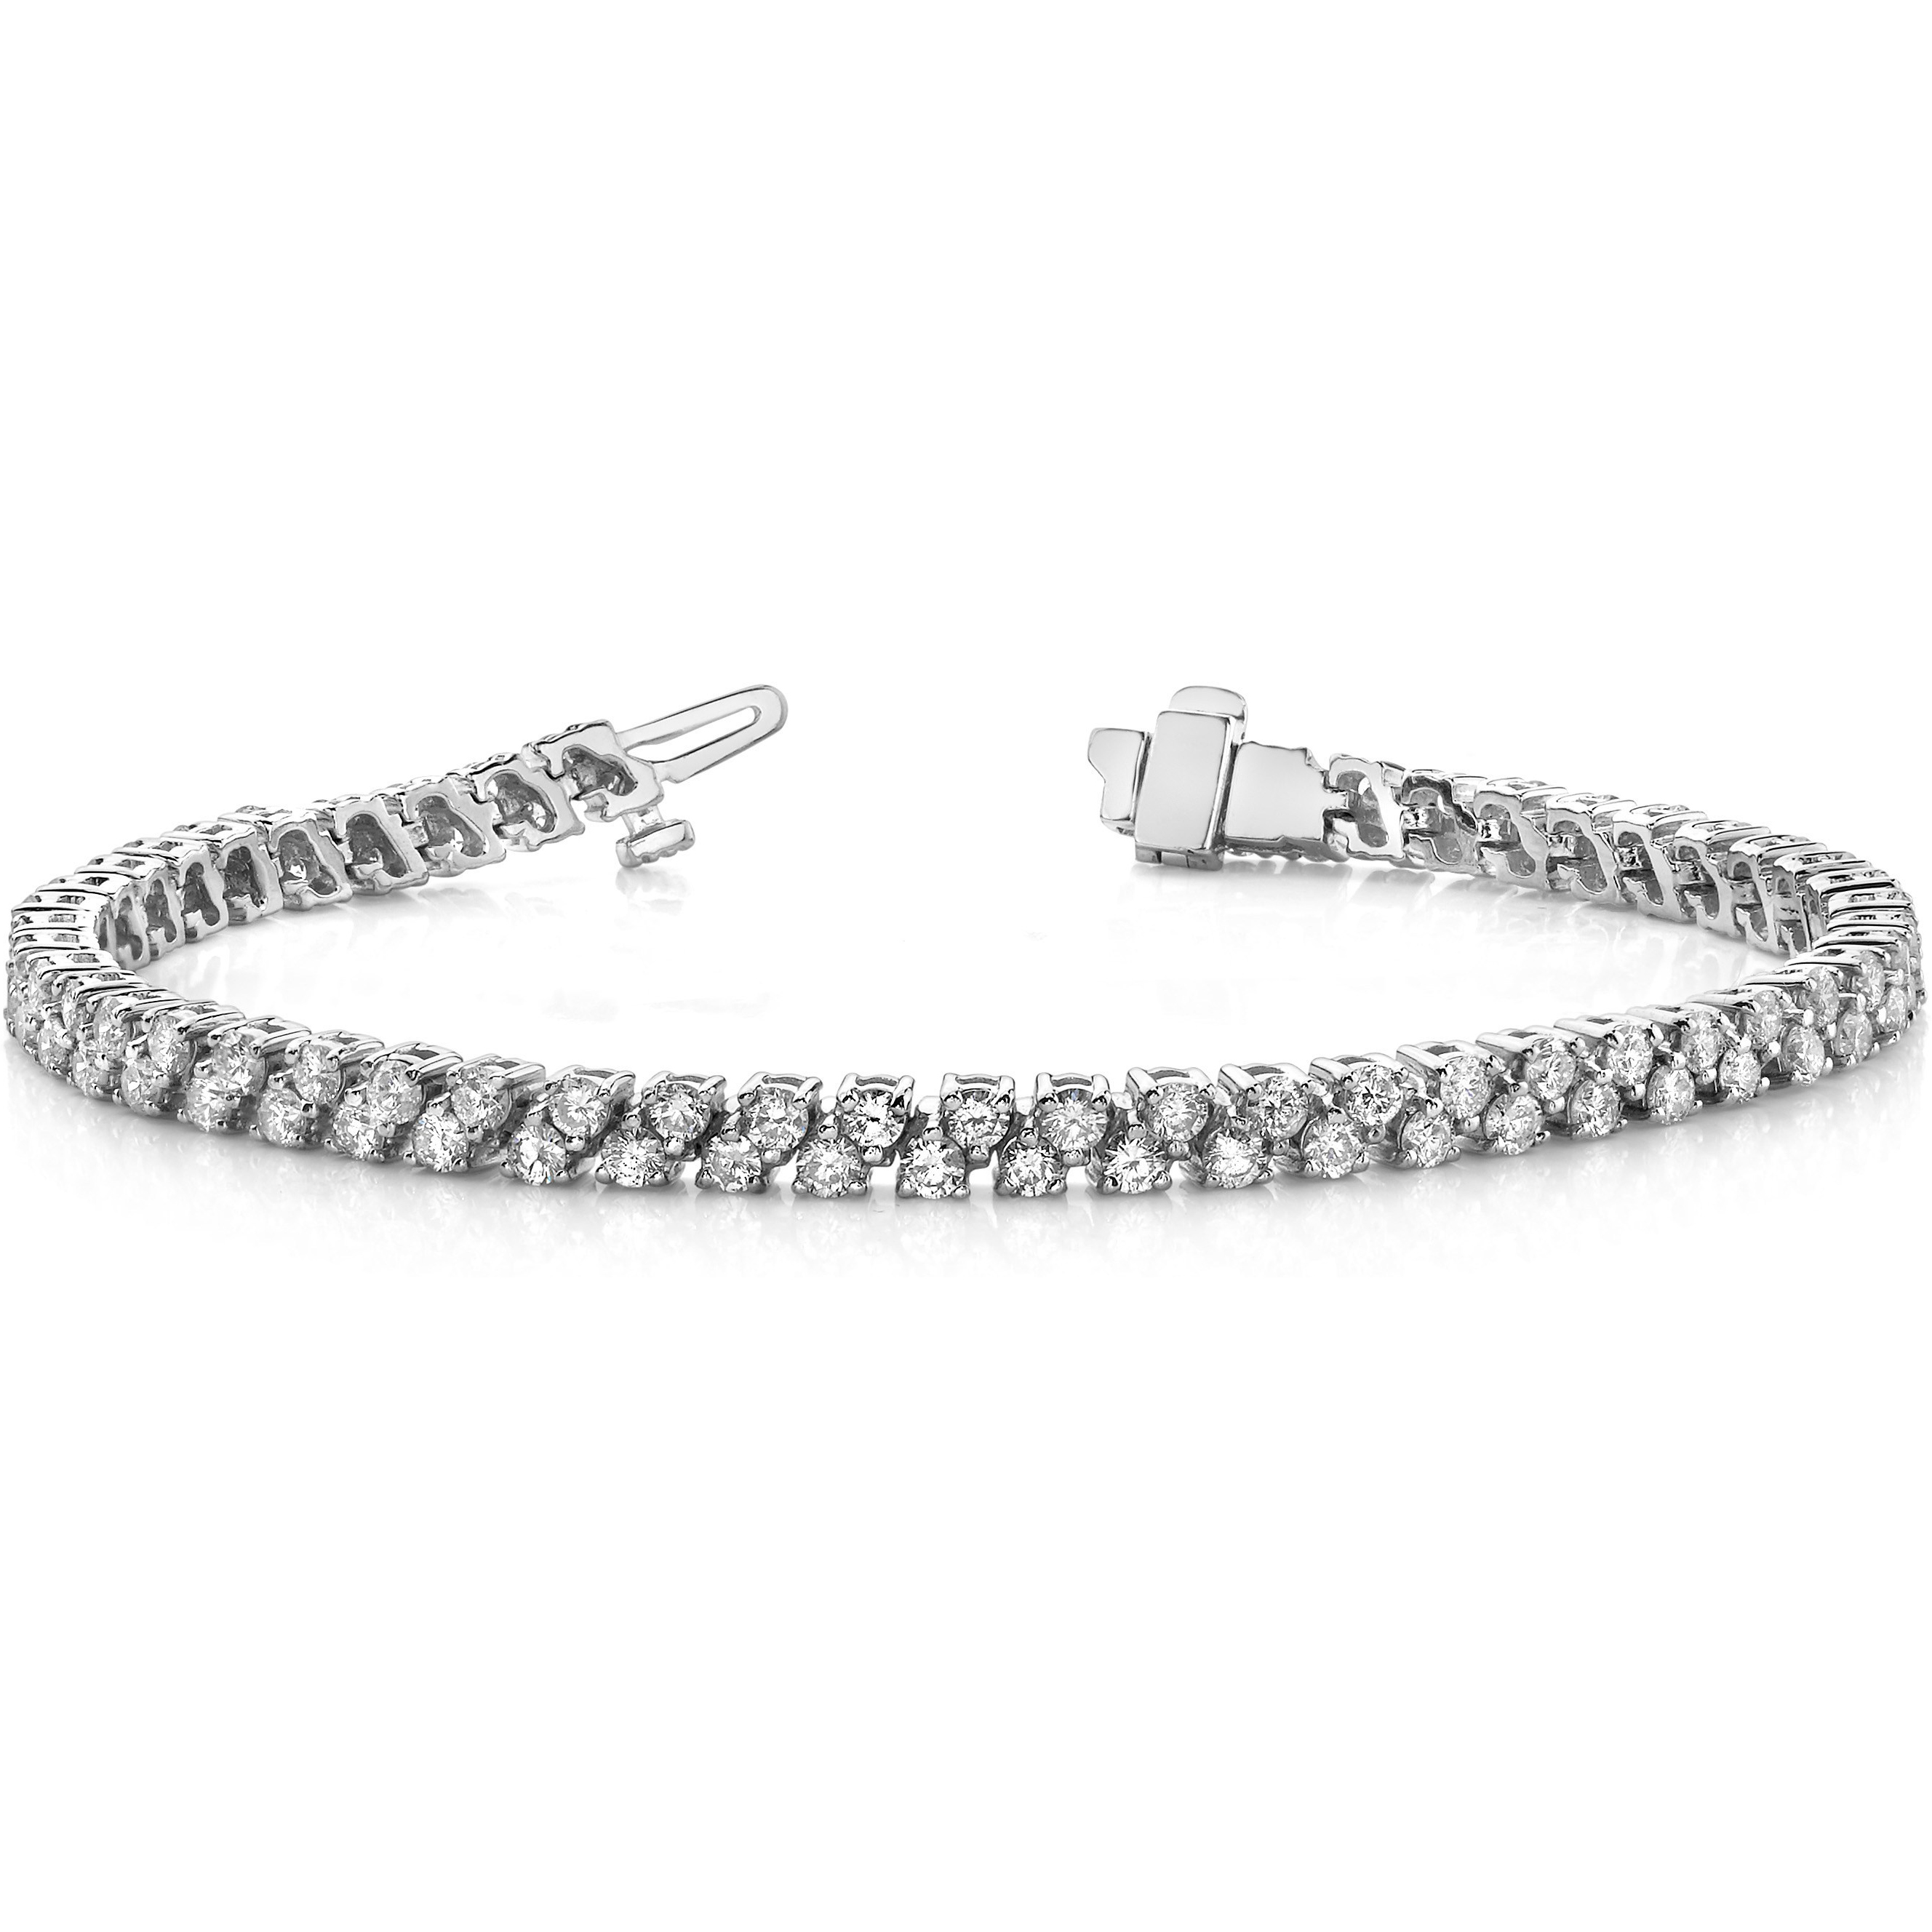 Bracelet Rivière Diamants - 3.00 Carat - Or Blanc 14 Carats